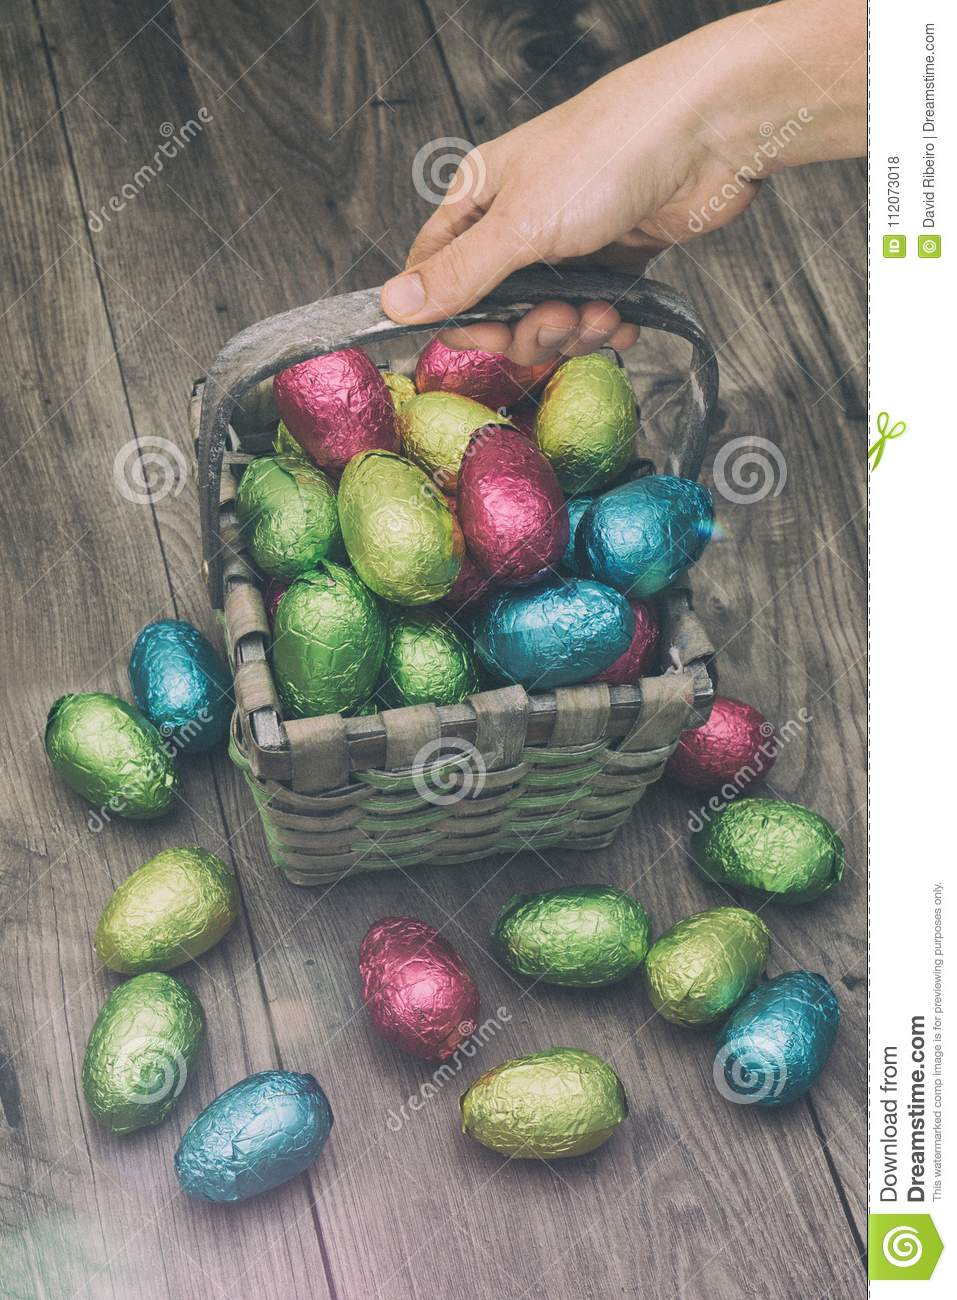 Hand picking up a straw basket filled with Easter chocolate eggs wrapped in colorful tinfoil